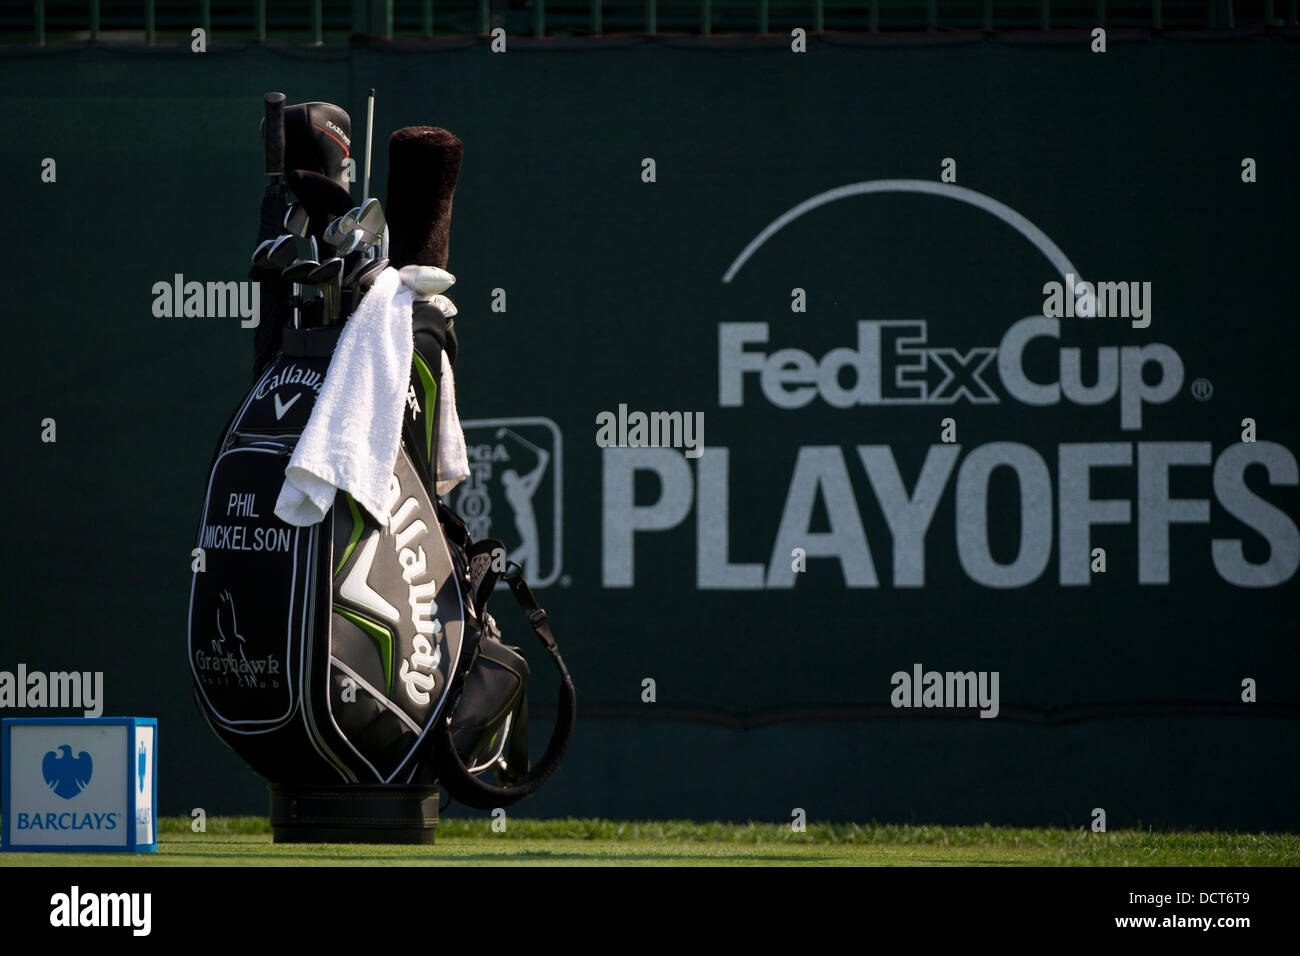 Jersey City, New Jersey, USA. 21st Aug, 2013. August 21, 2013: Phil Mickelson (USA) golf bag is viewed in front - Stock Image